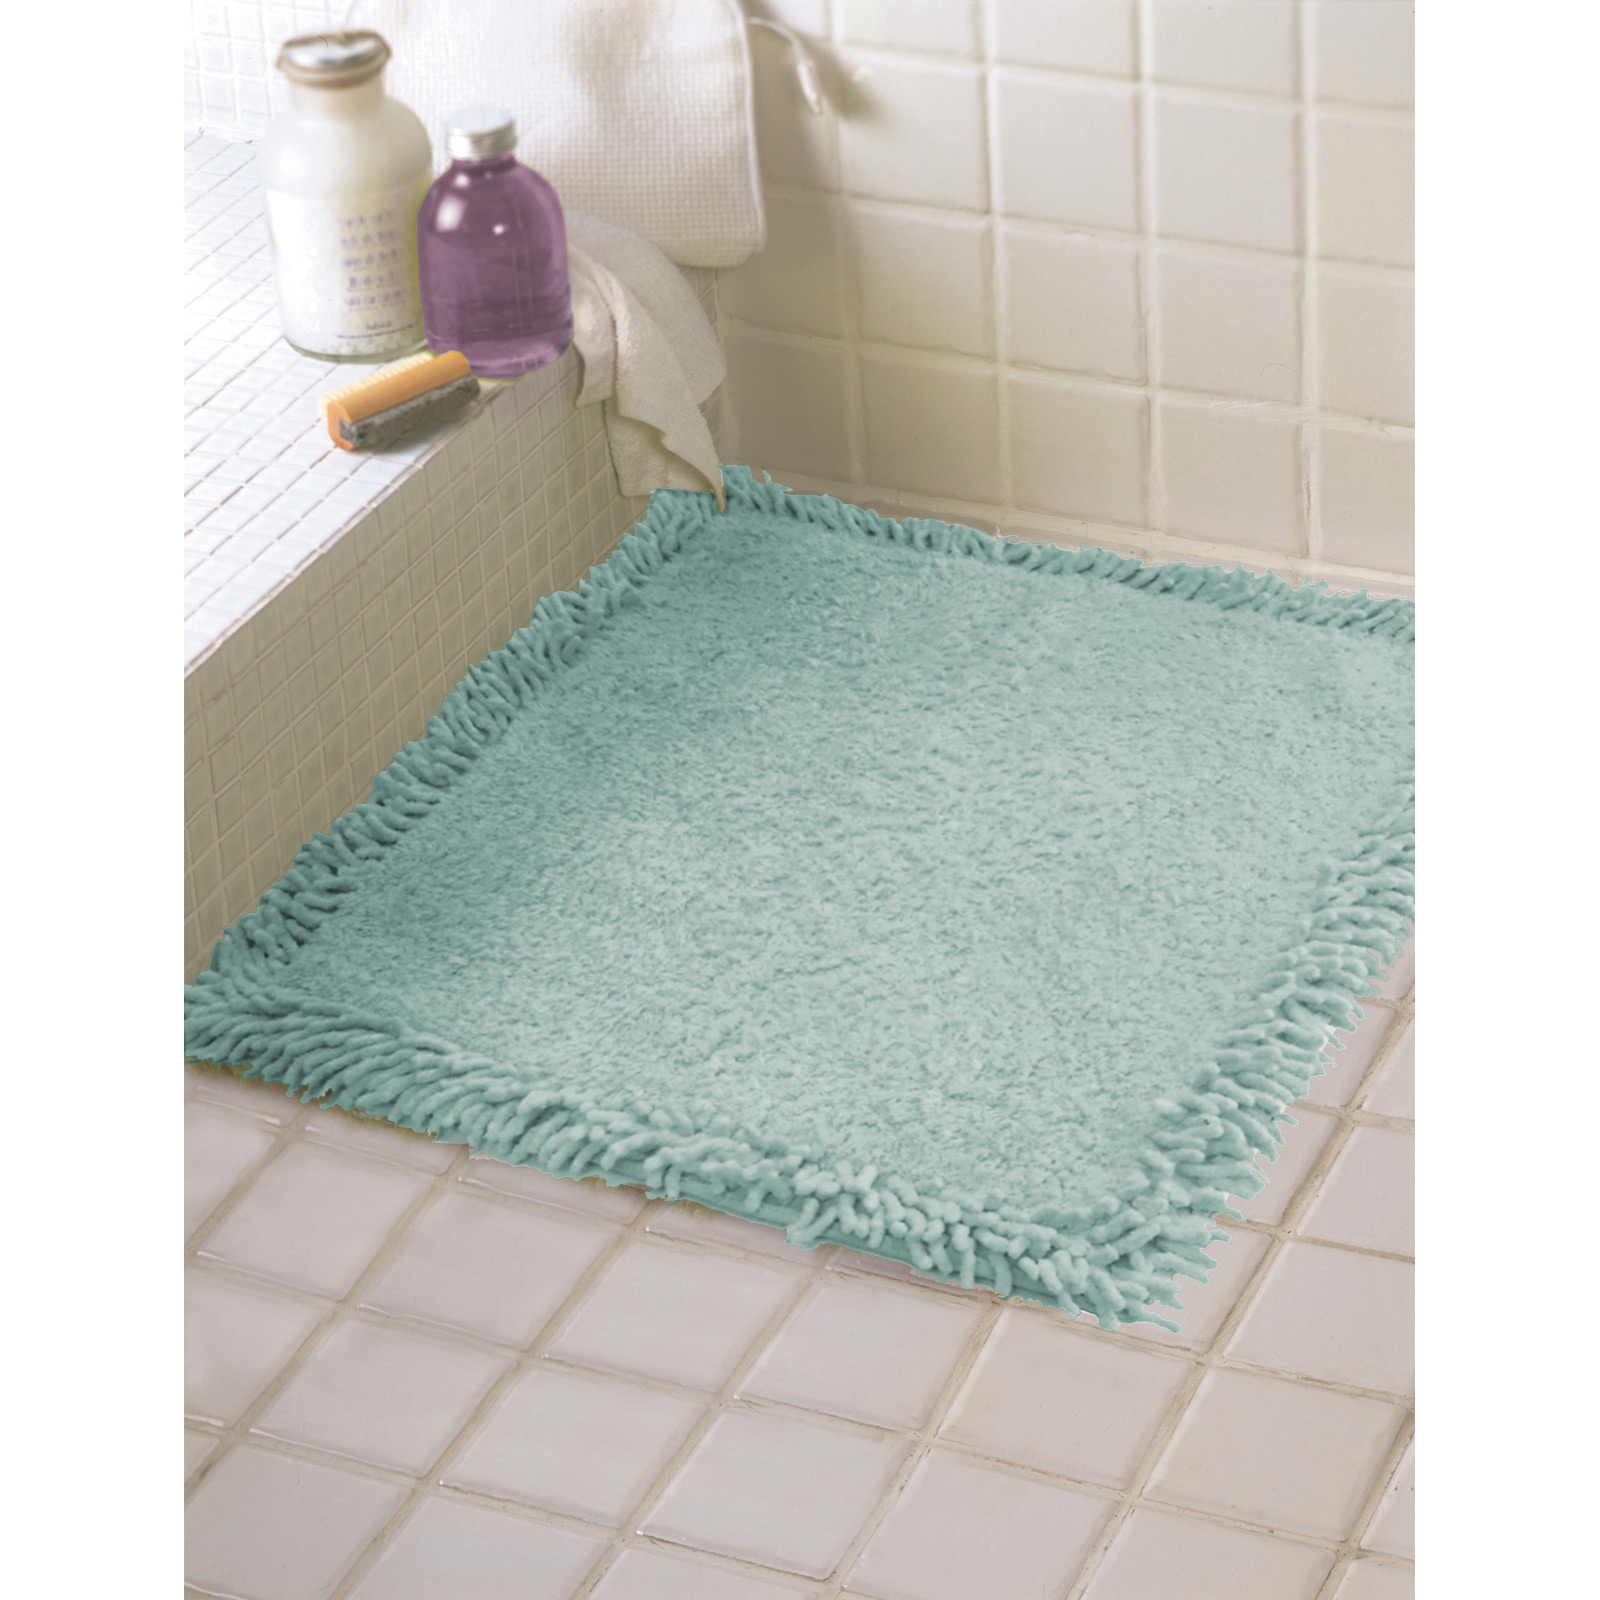 bathroom floor liner 60cm x 60cm shower mat floor towel bath rug 100 cotton 10655